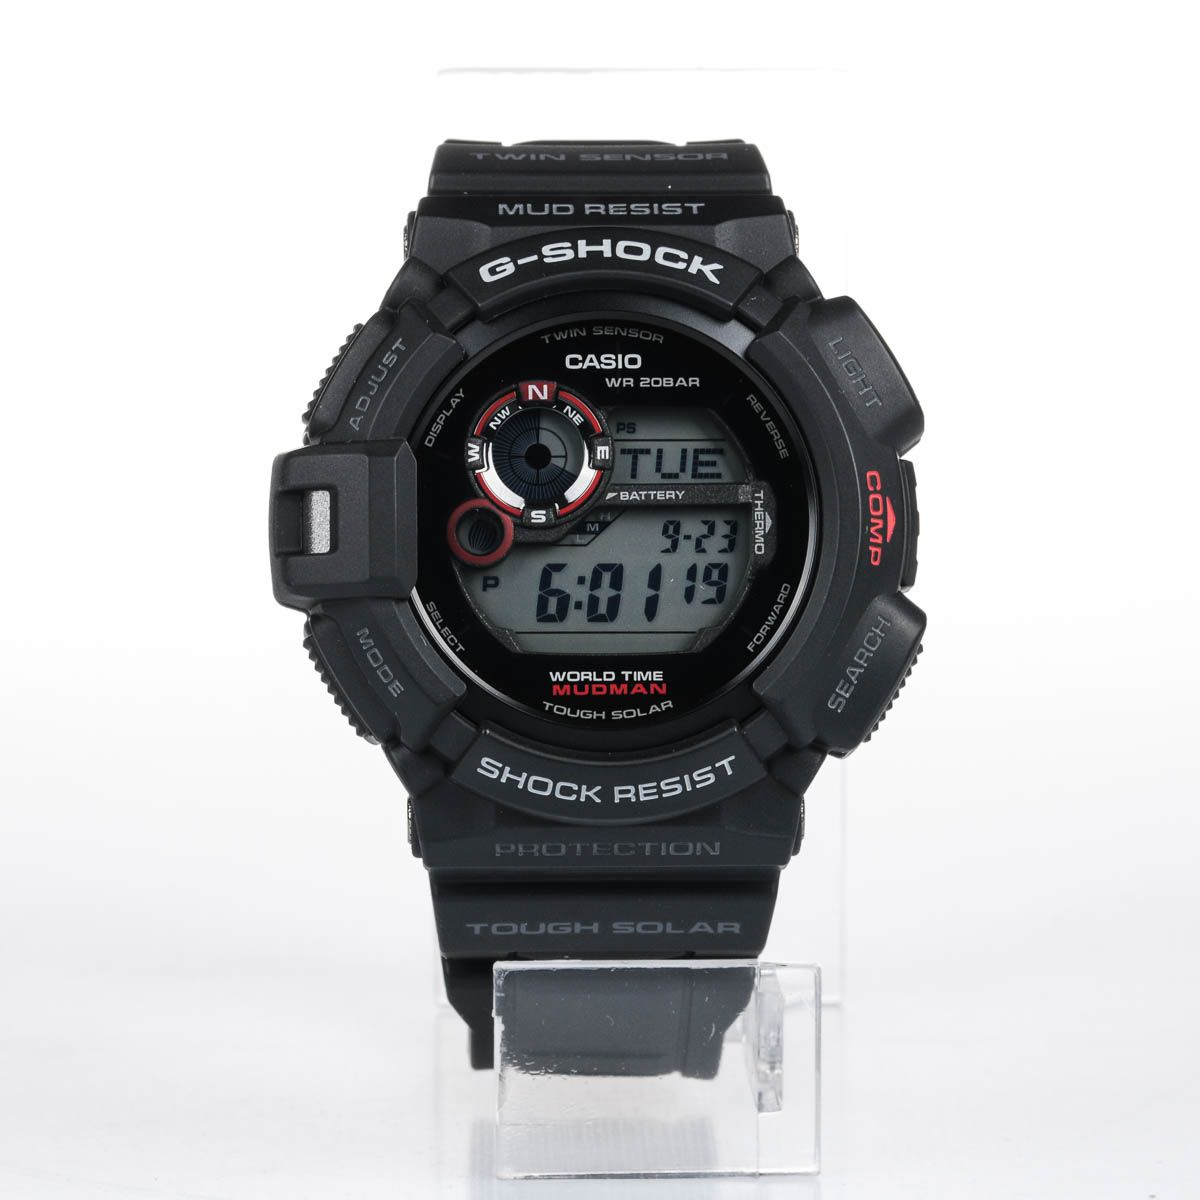 c356922ad44 Buy a Casio G SHOCK G 9300 1 Watch Black online at unbeatable prices by UK s